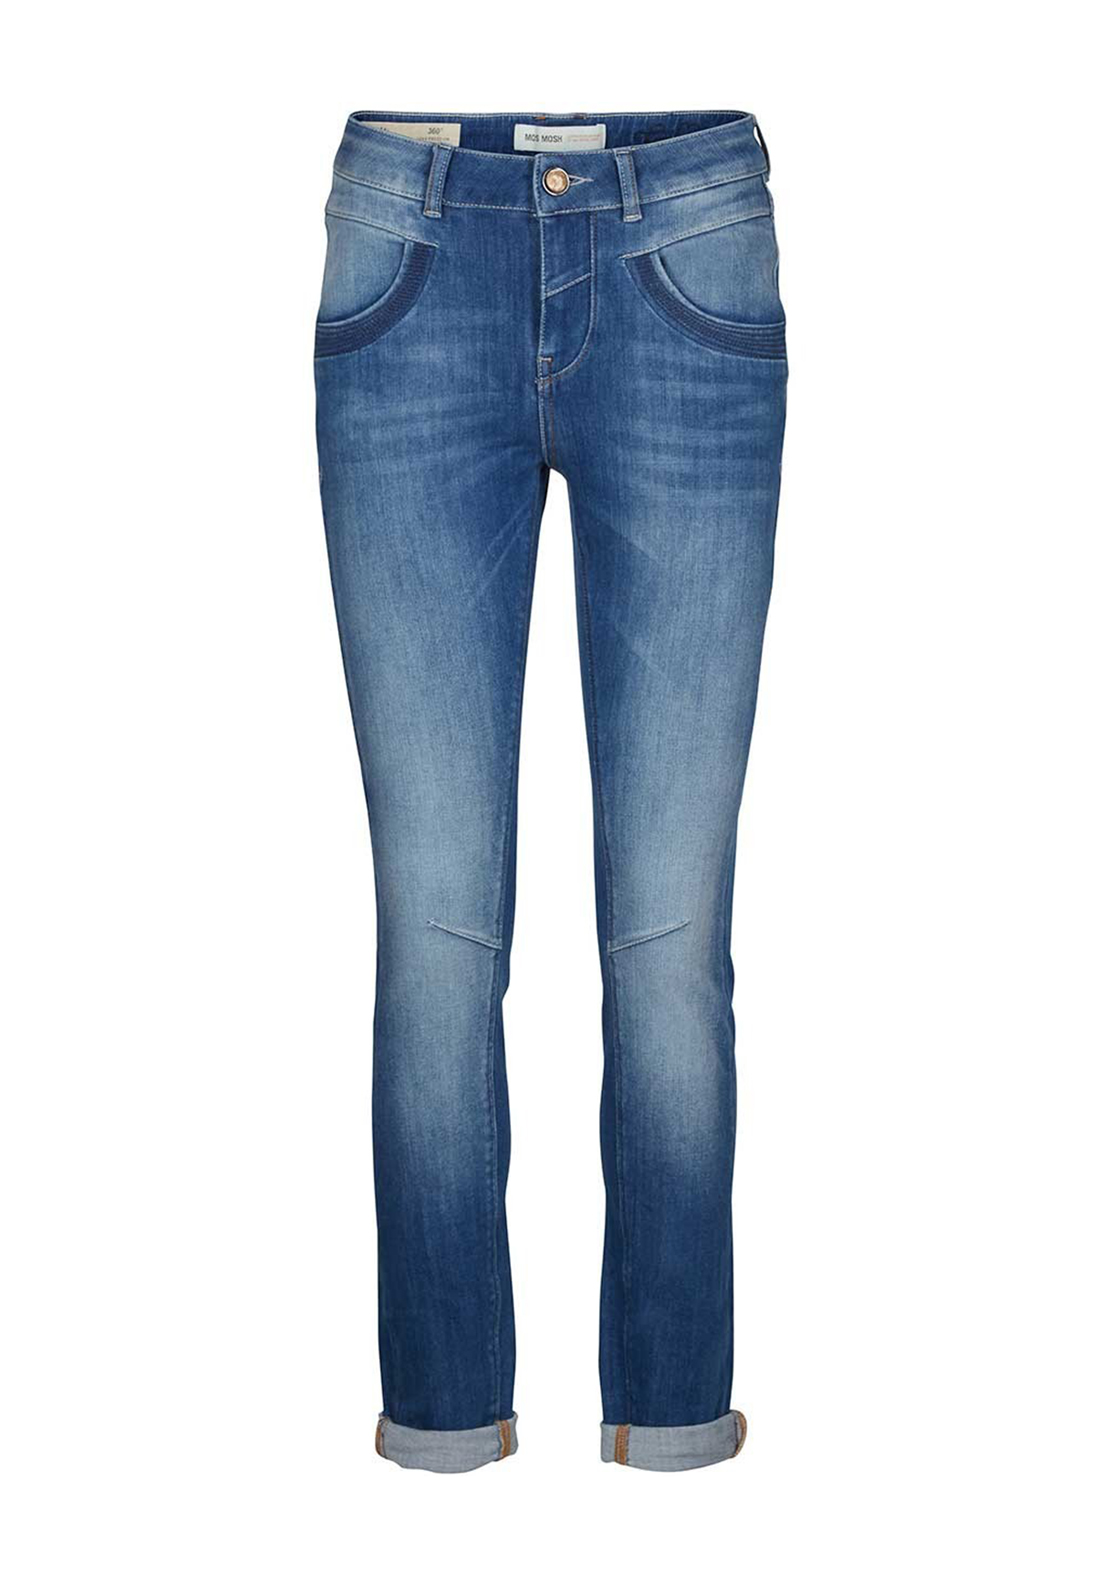 Mos Mosh Naomi Freedom Tapered Jeans, Blue